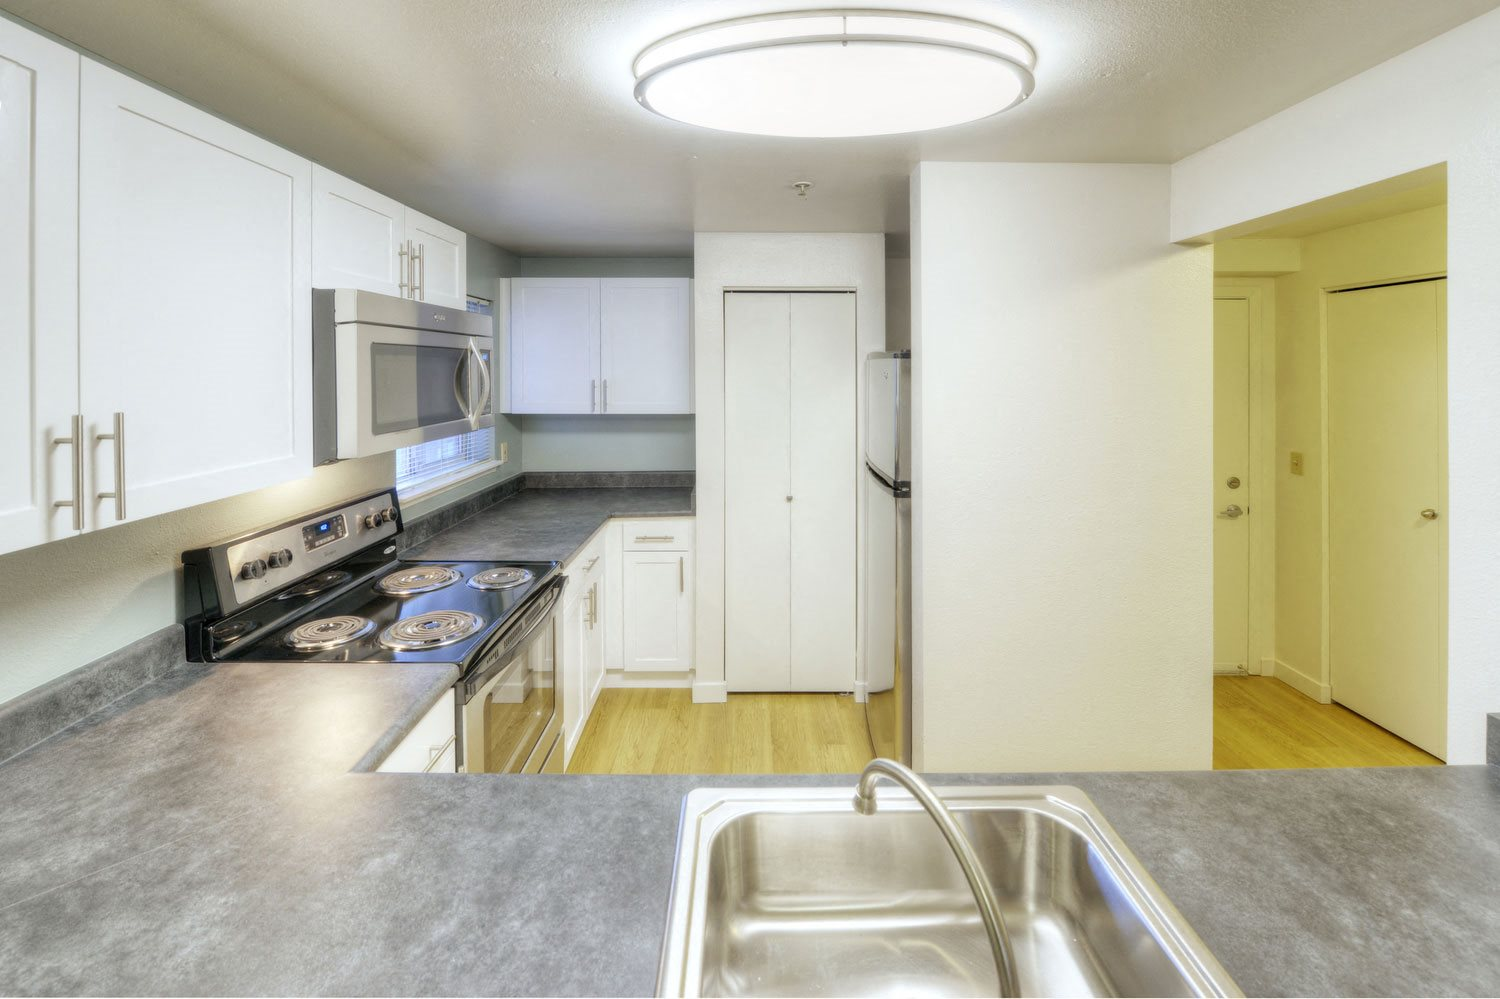 Classic unit kitchen featuring stainless appliances and laminate countertops